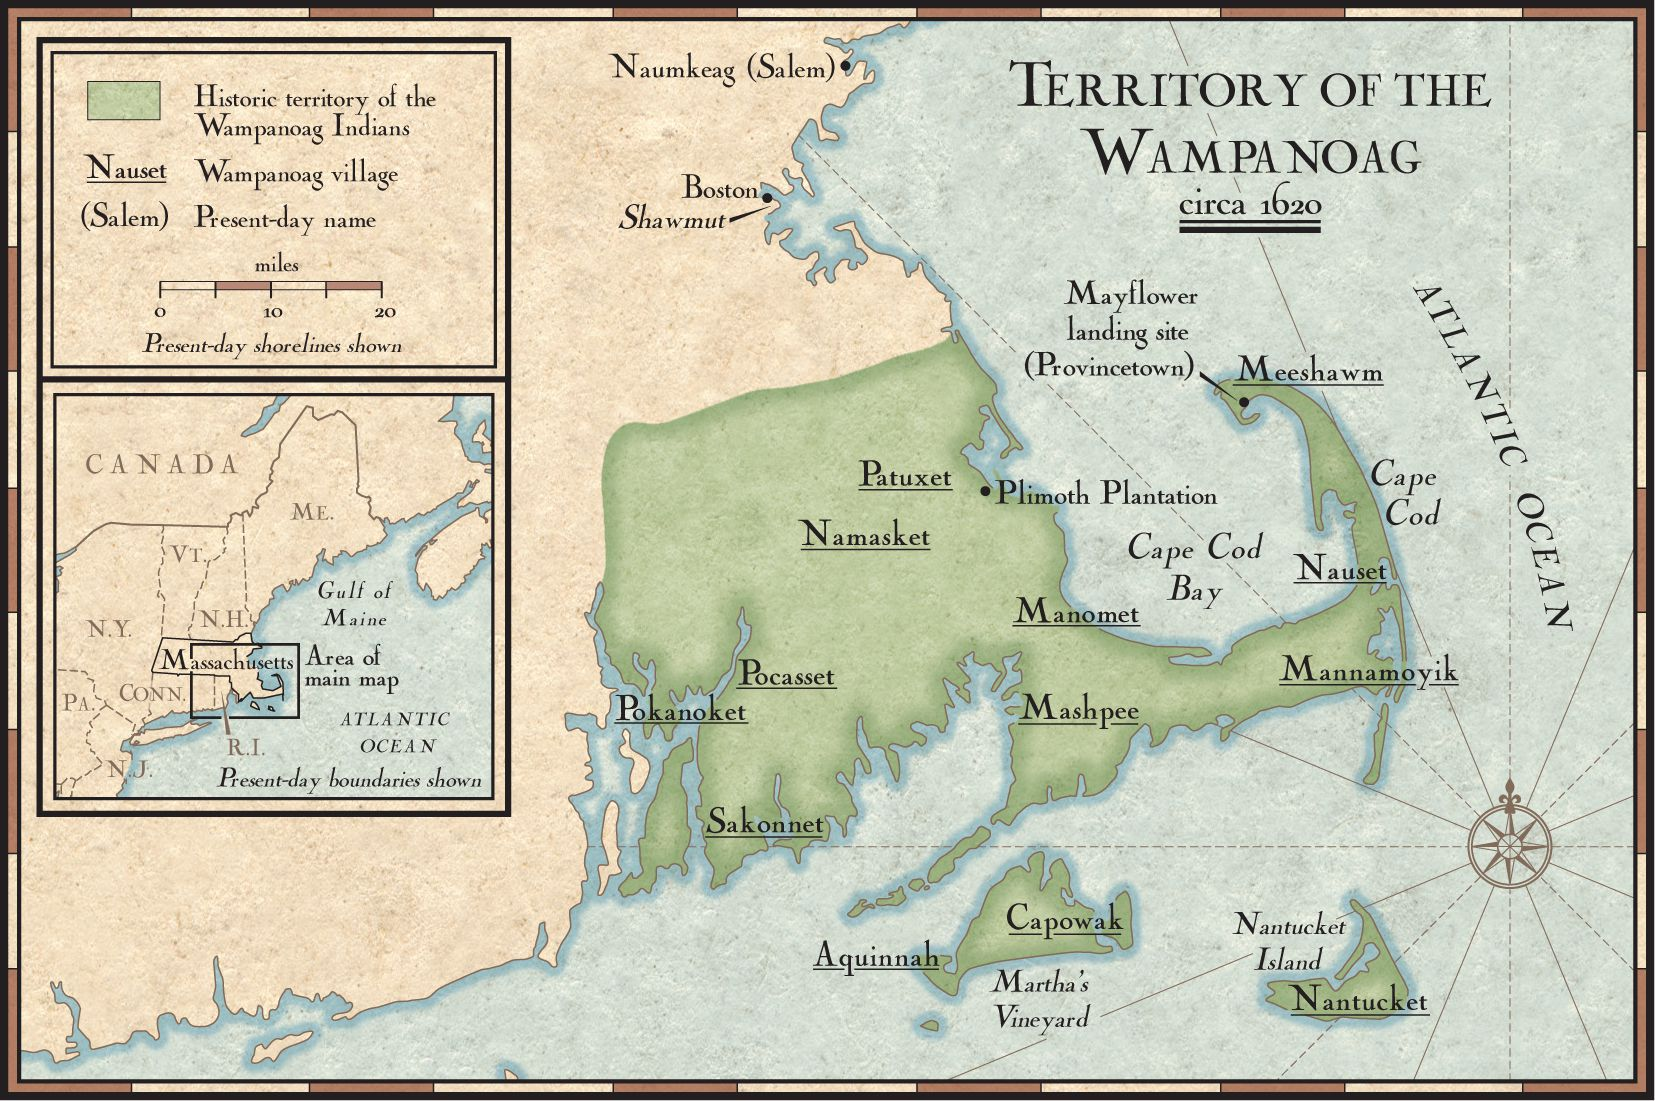 The land of the Wampanoag nation